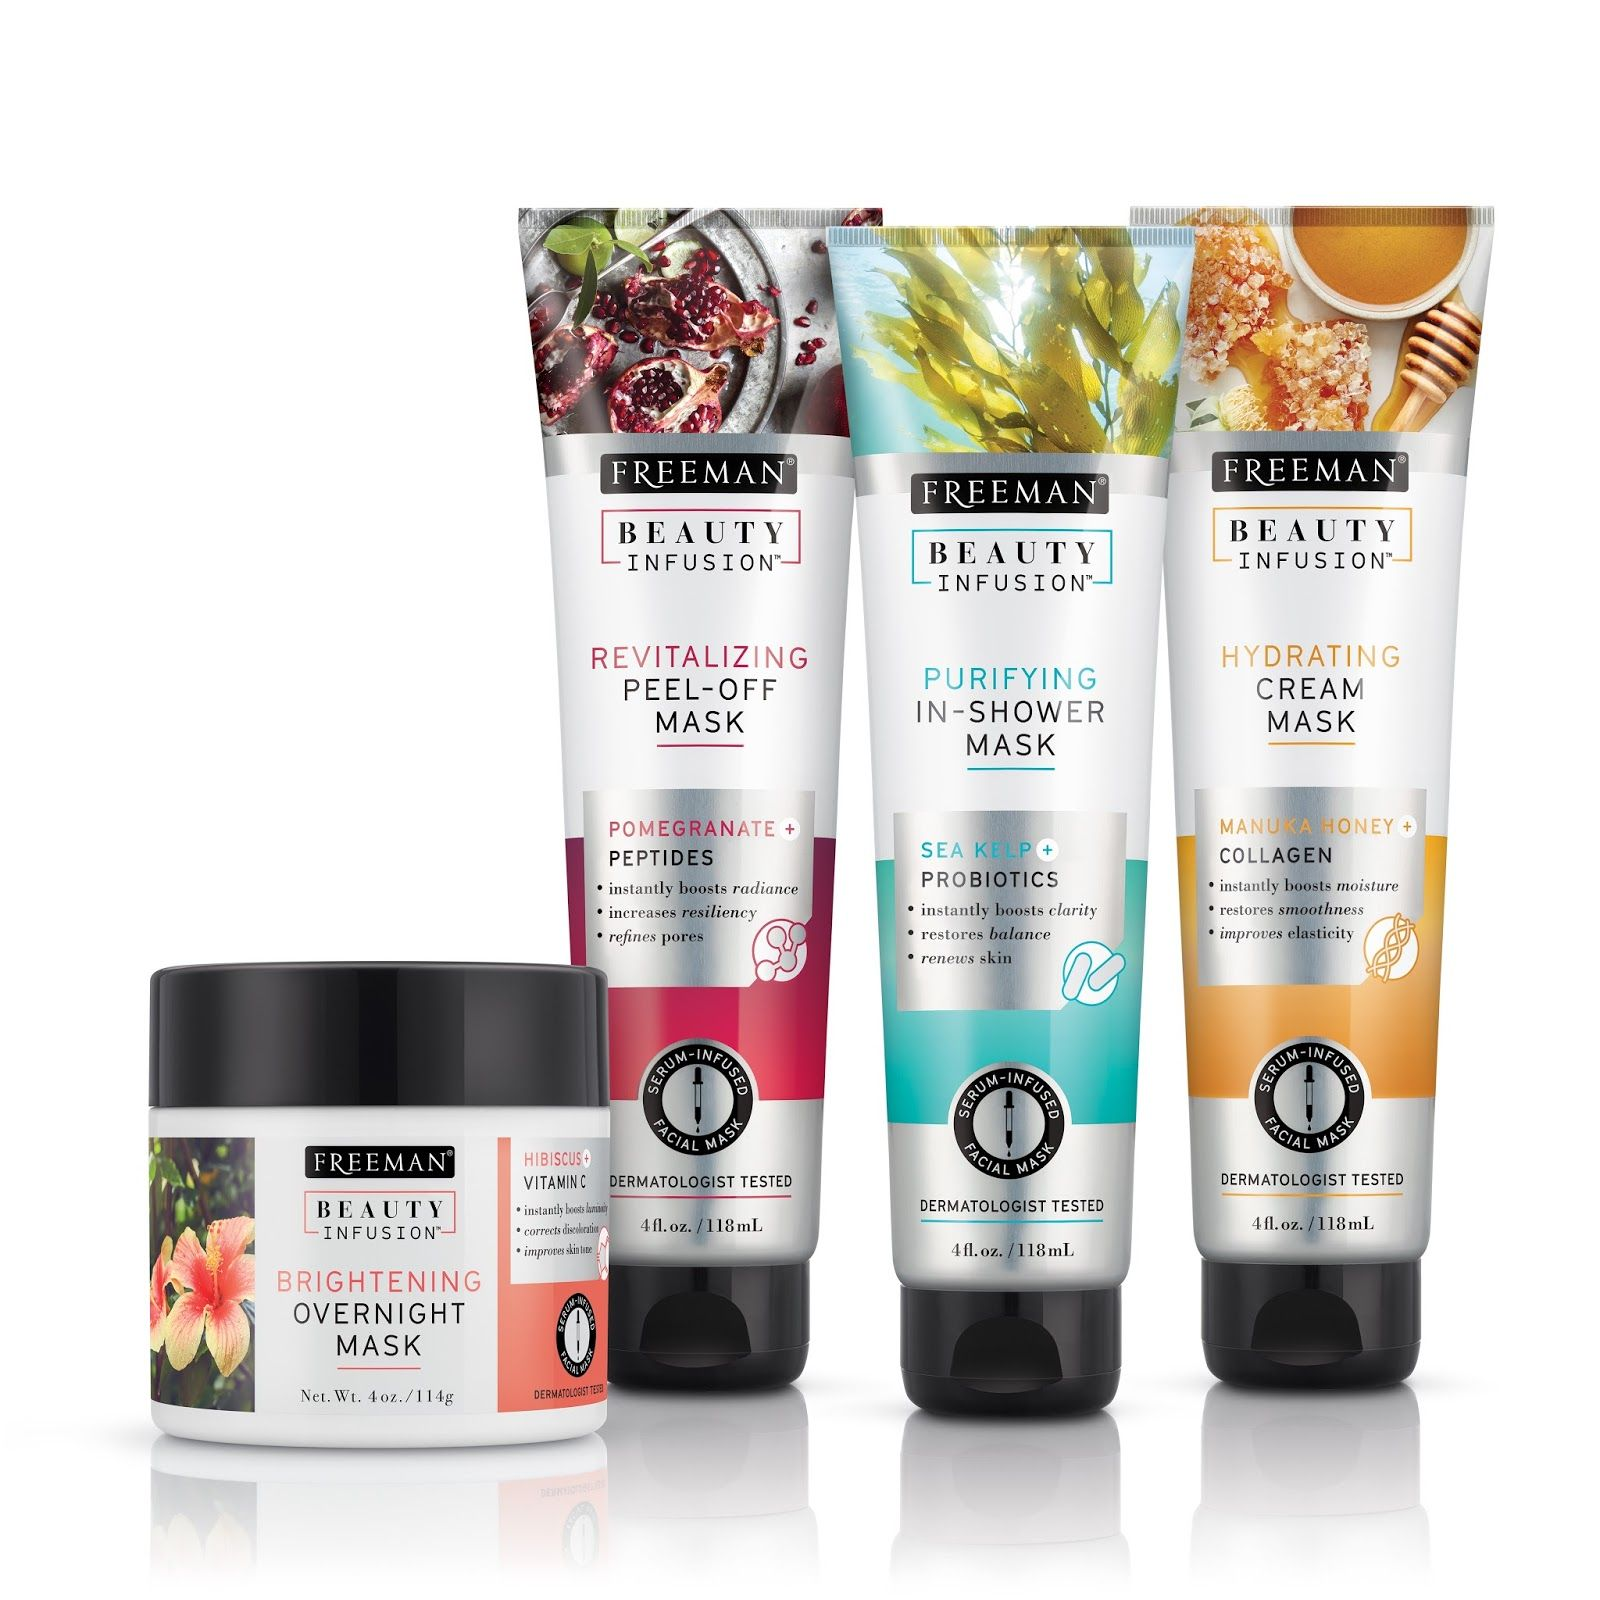 Freeman Beauty Infusion Skincare packaging, Cosmetic